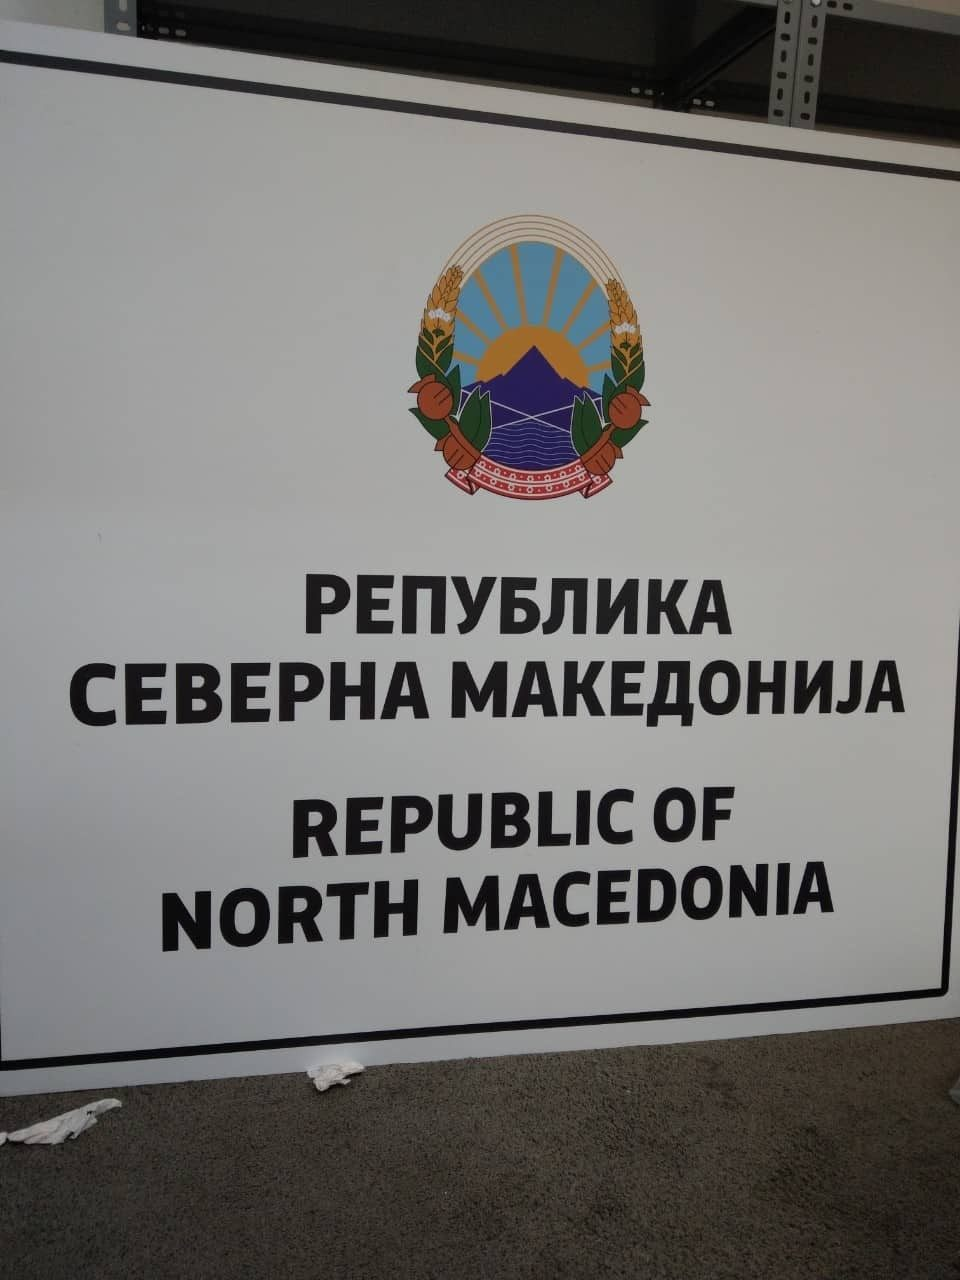 As of today, Macedonia is officially renamed North Macedonia